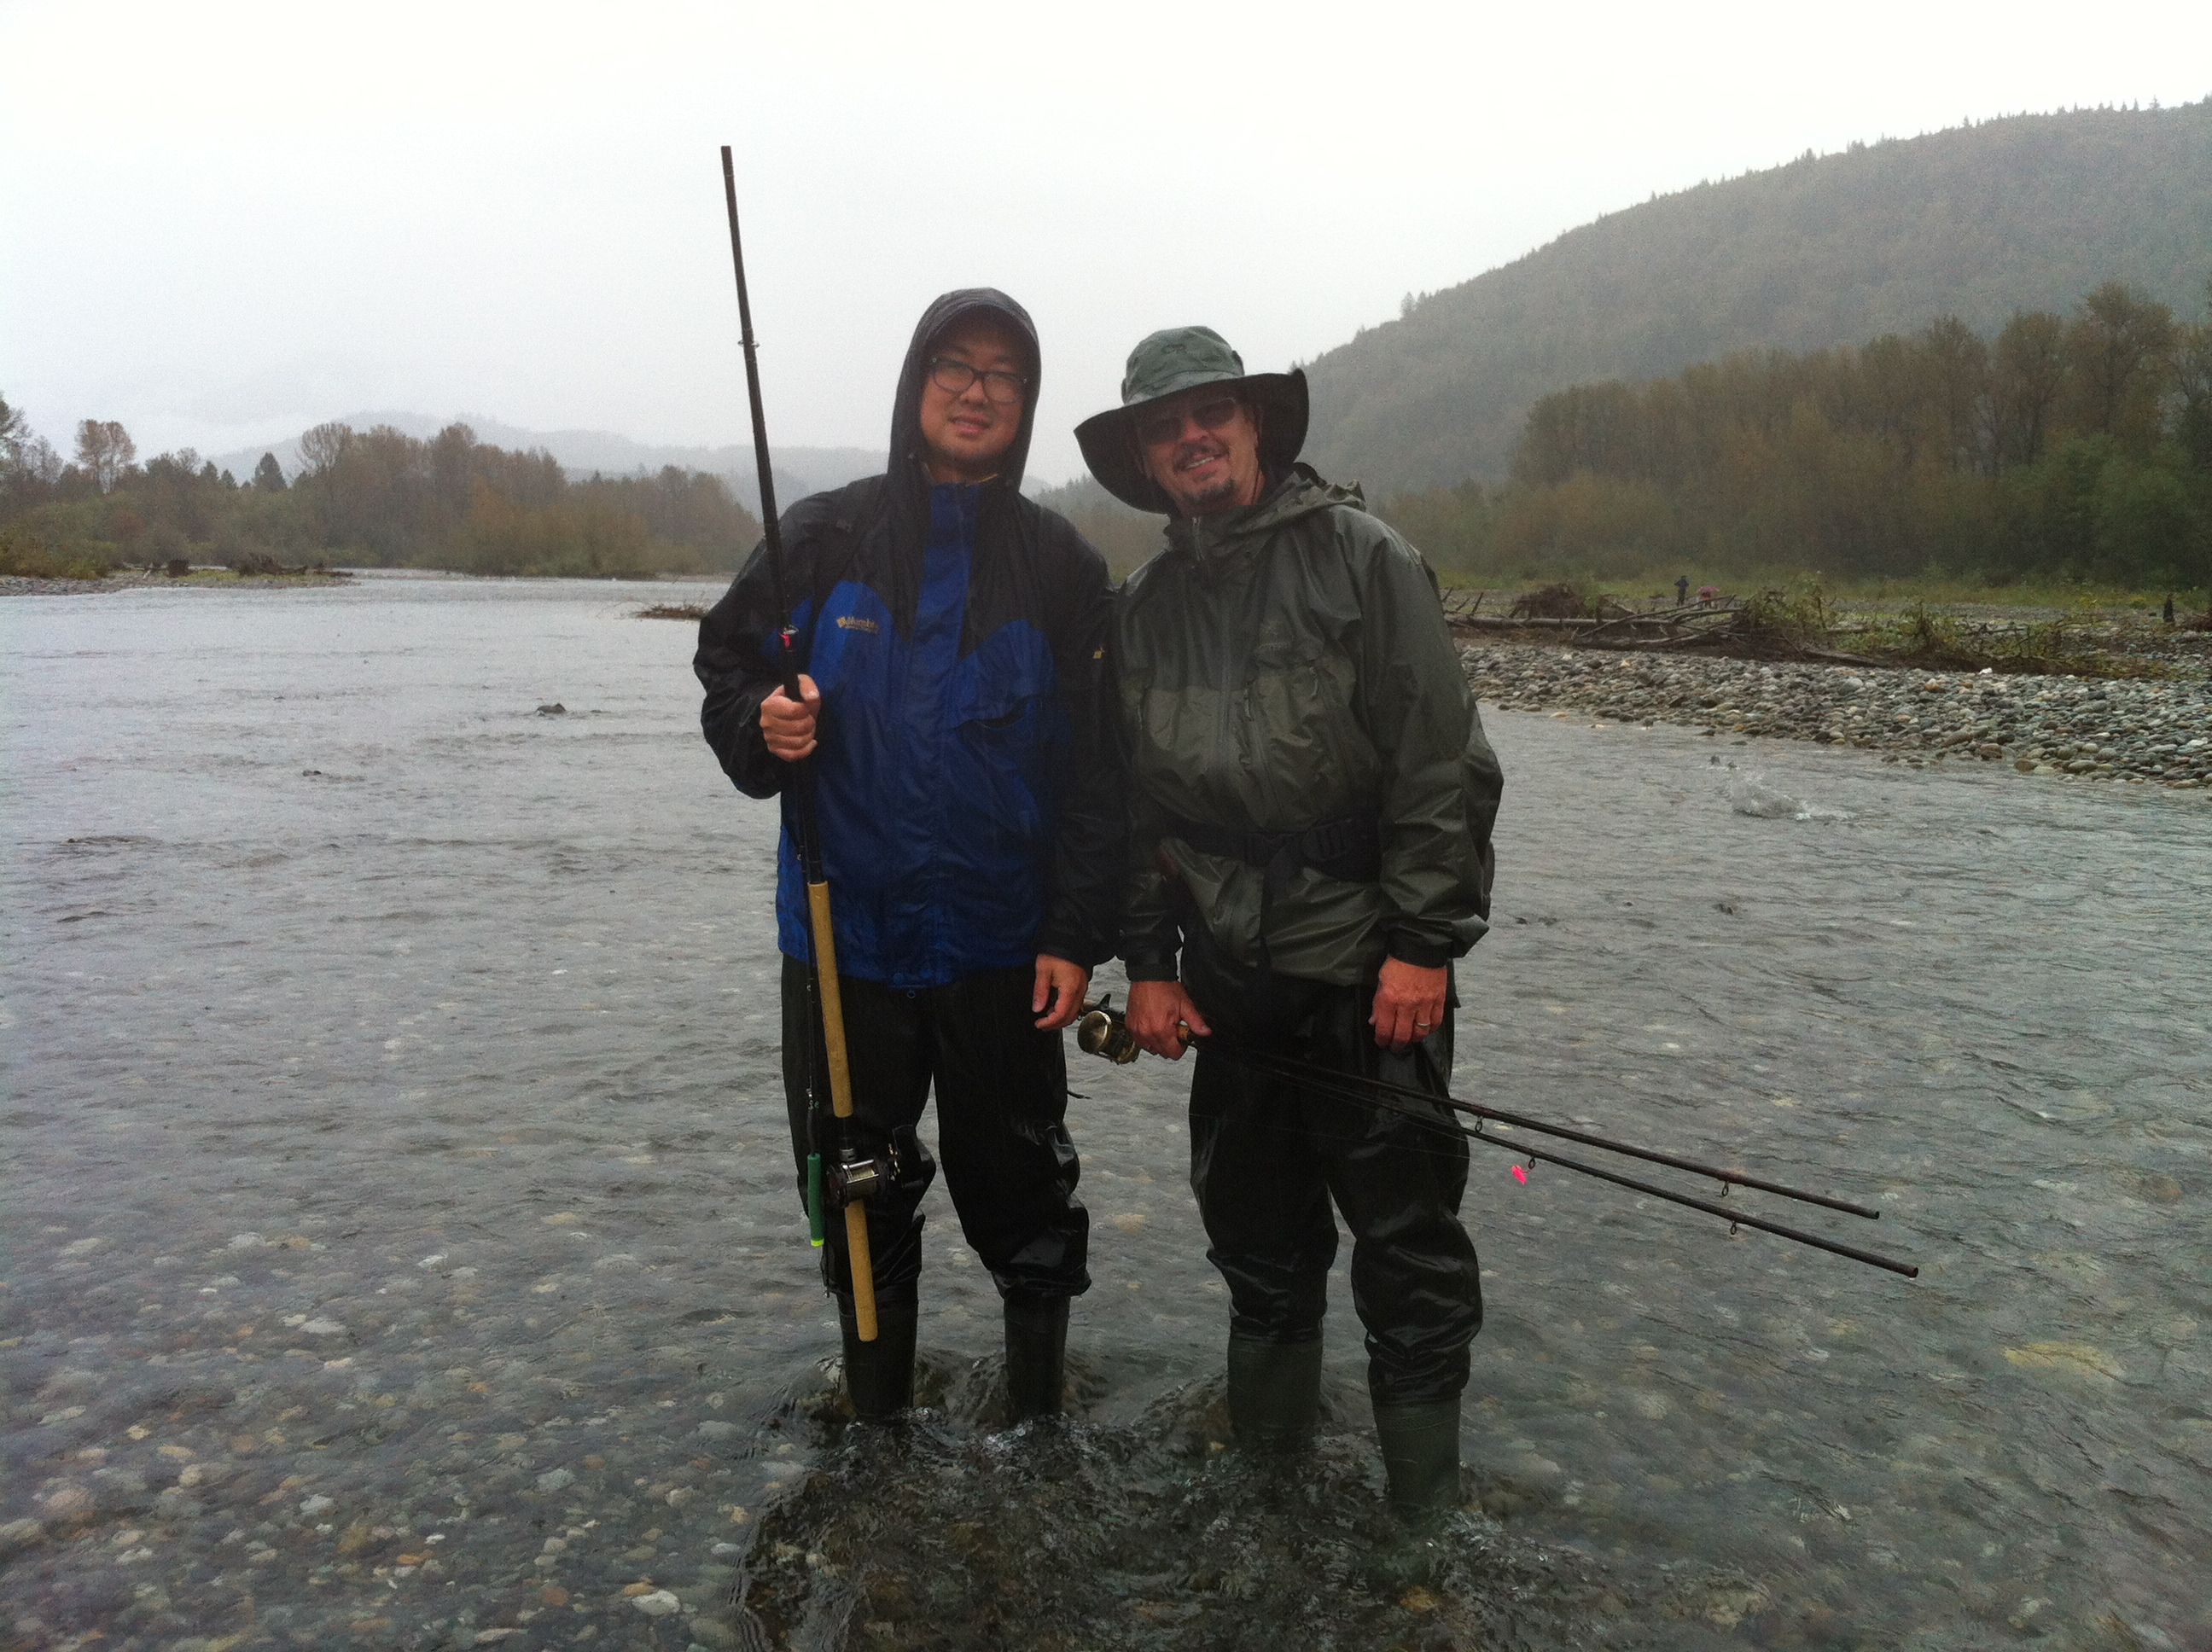 Brian & Dan on the Chilliwack River